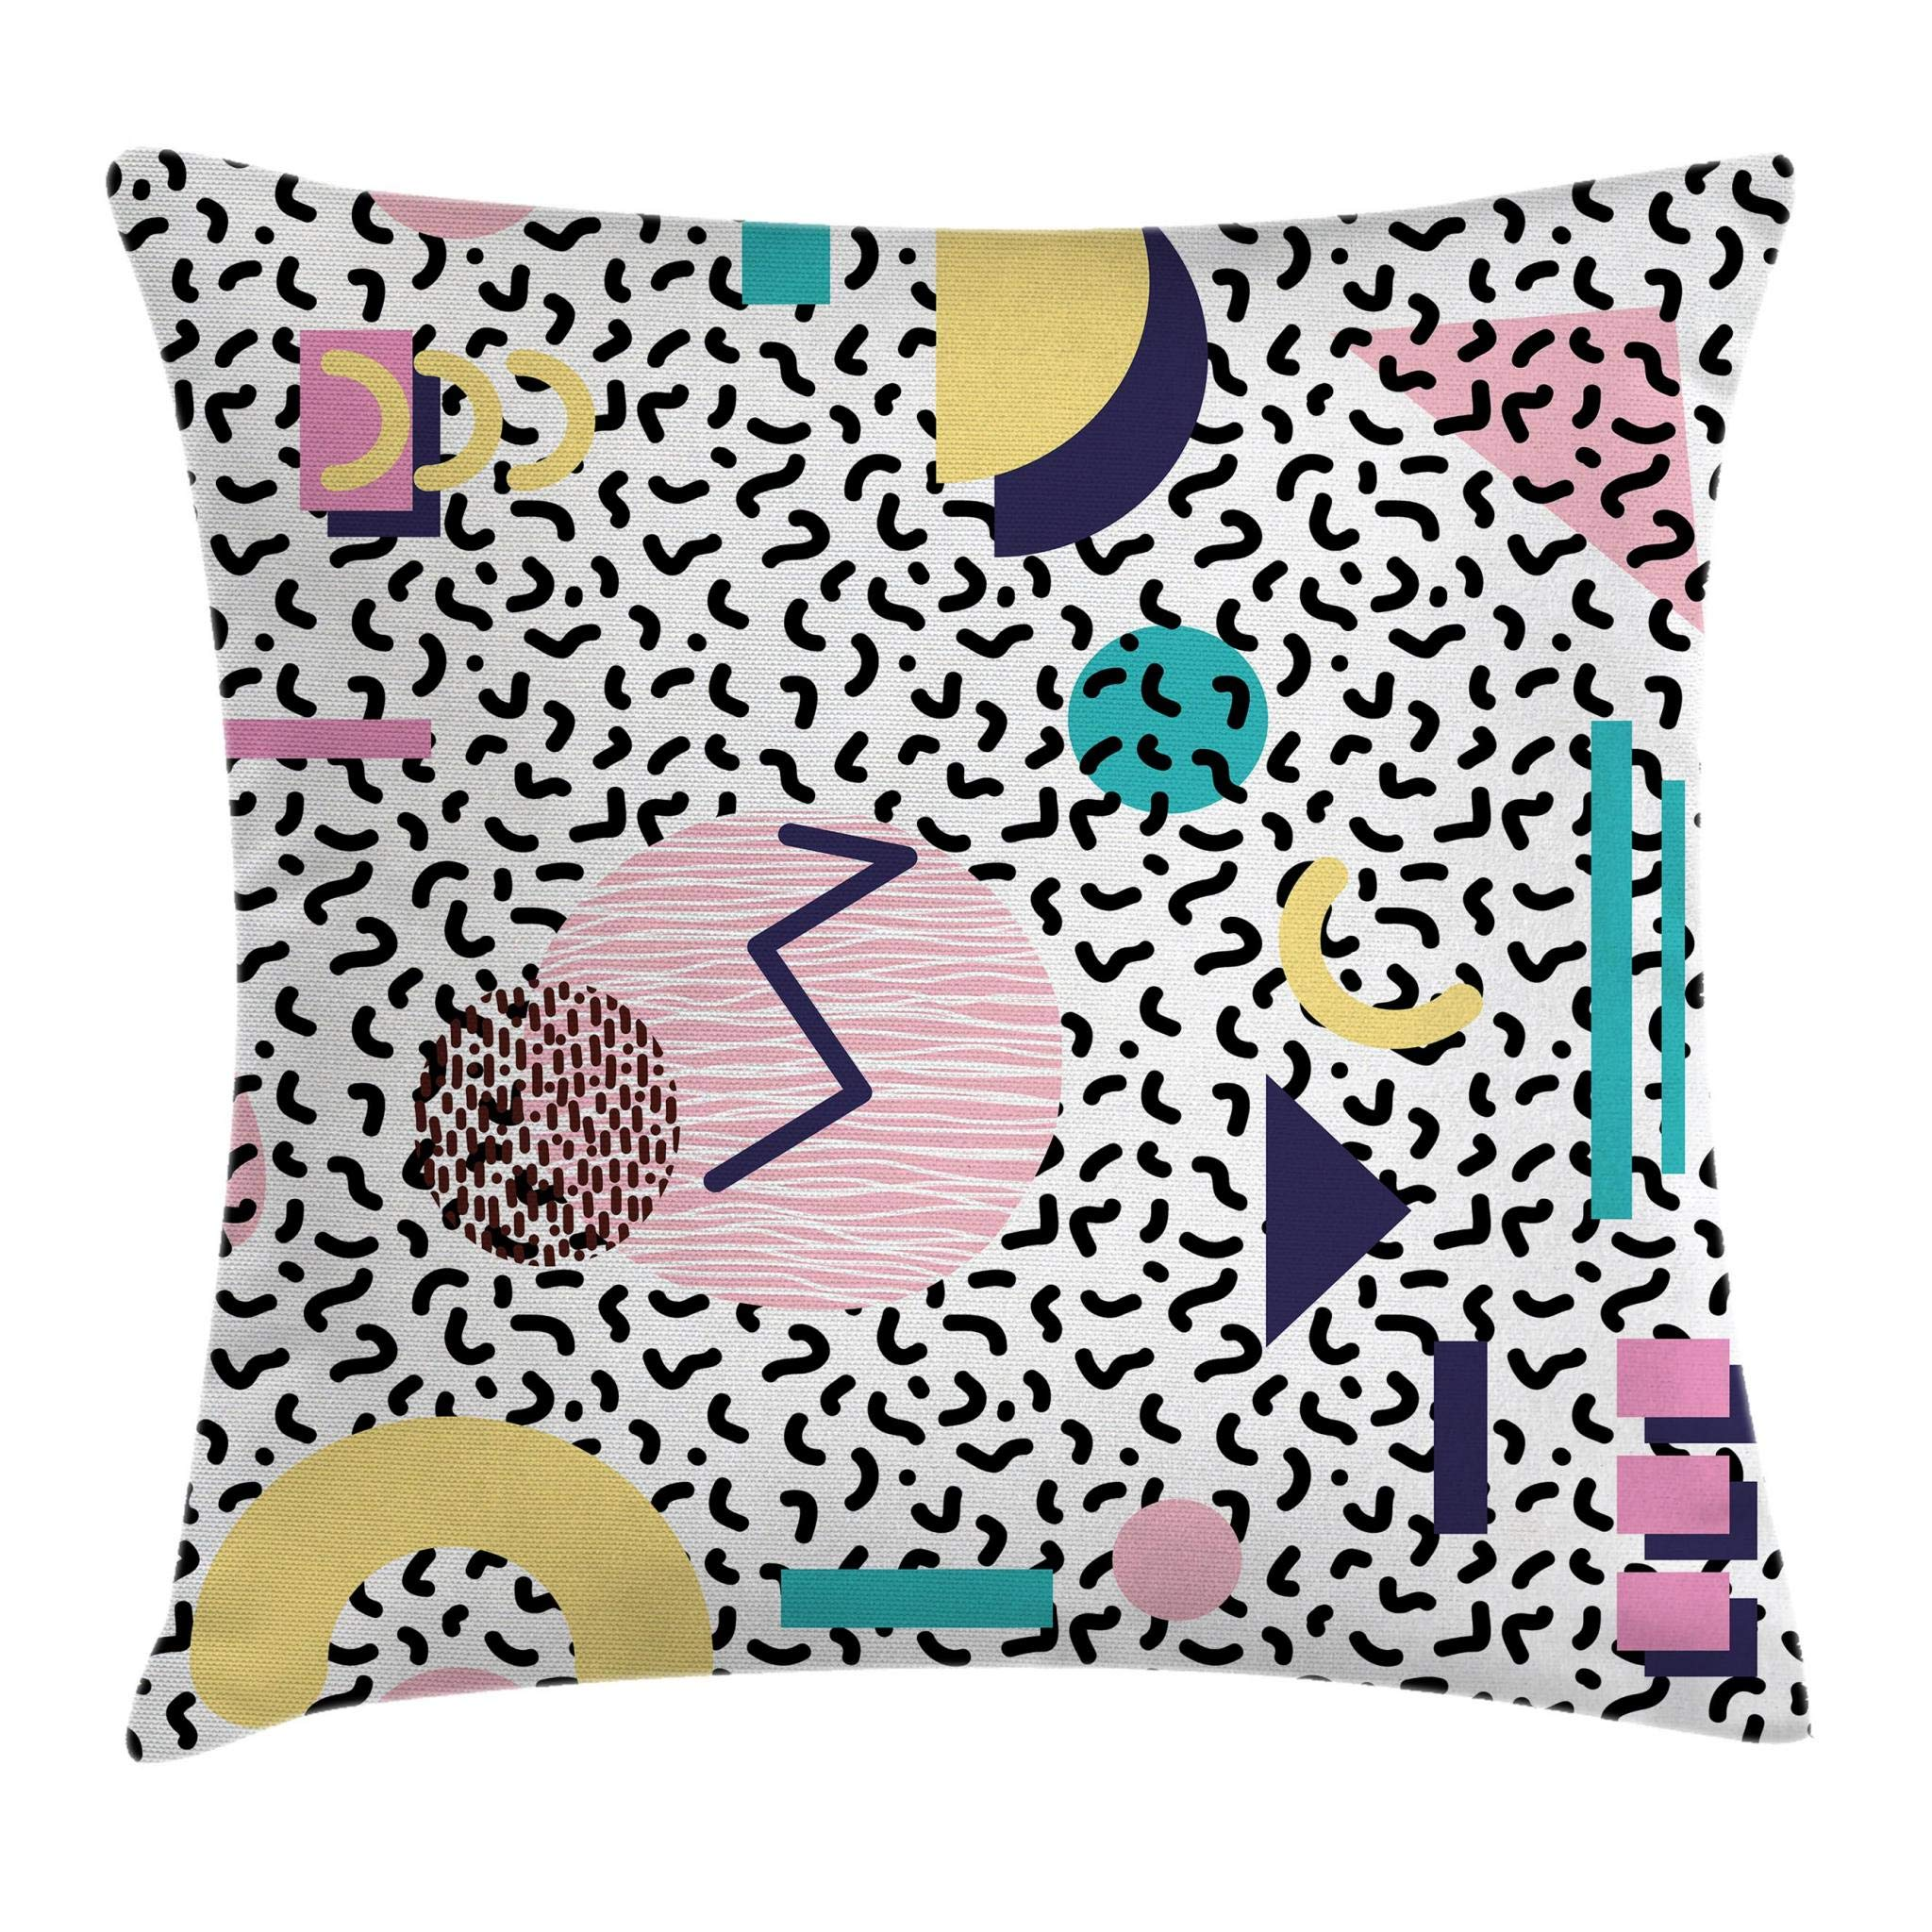 Ambesonne 90s Throw Pillow Cushion Cover, Geometric Pattern in Retro Style with Round Half Moon Triangle Shapes Artwork, Decorative Square Accent Pillow Case, 18 X 18 Inches, Navy Yellow Pink